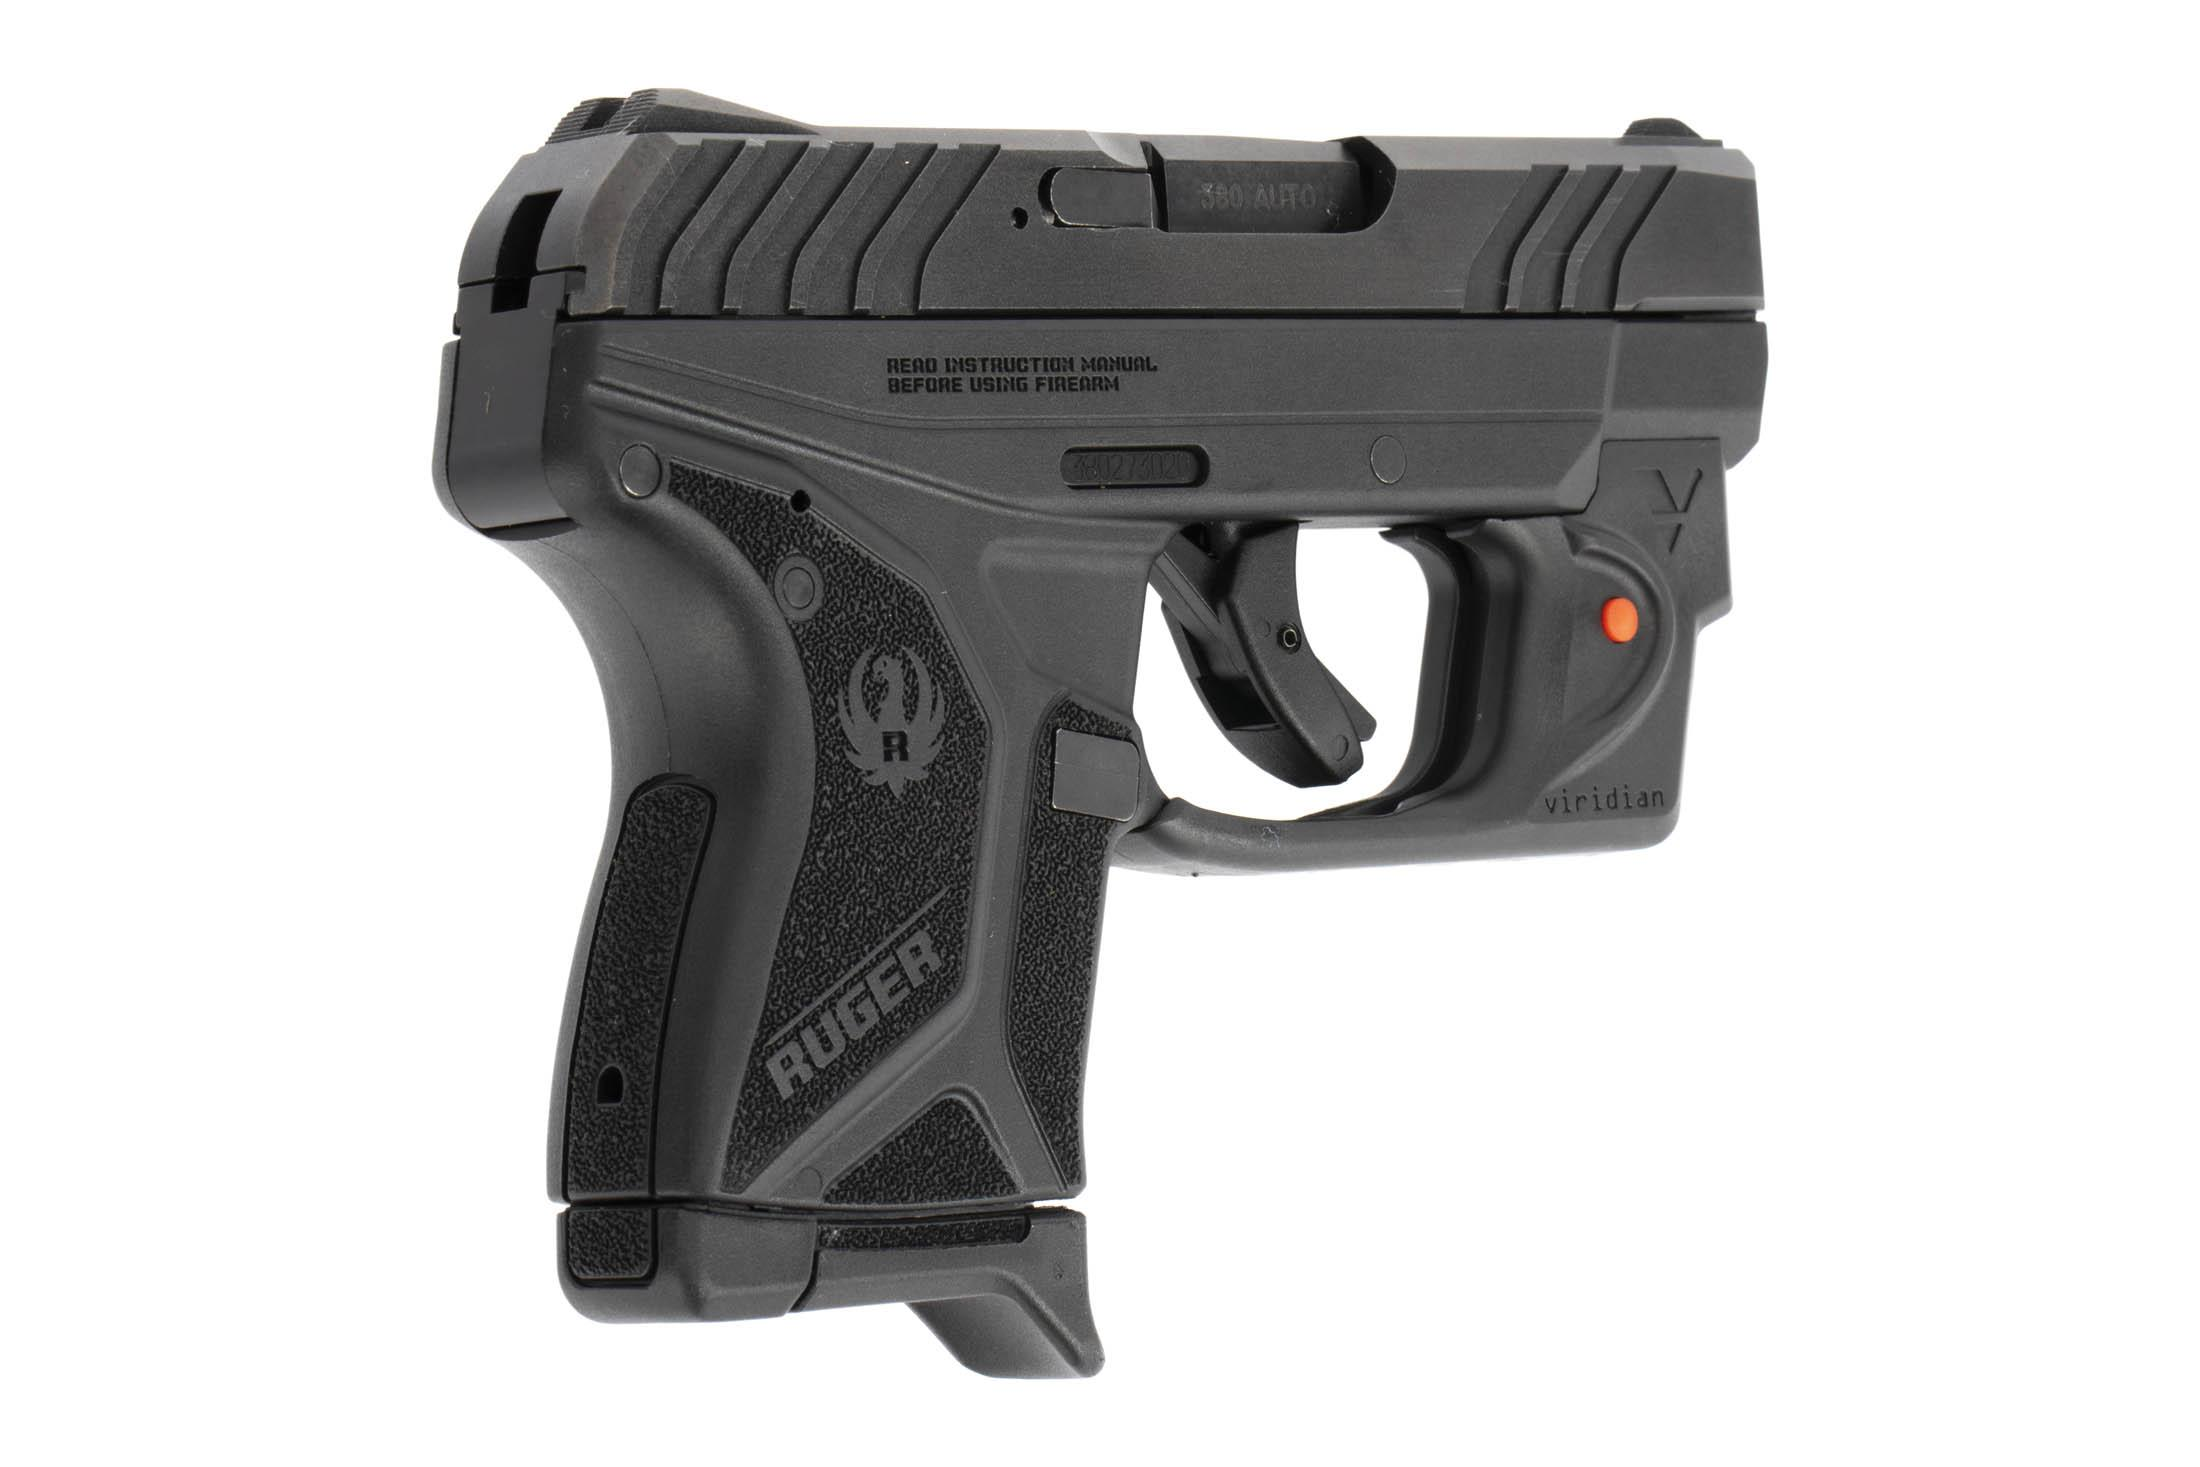 The Ruger LCP II is a sub compact .380 ACP handgun designed for concealed carry